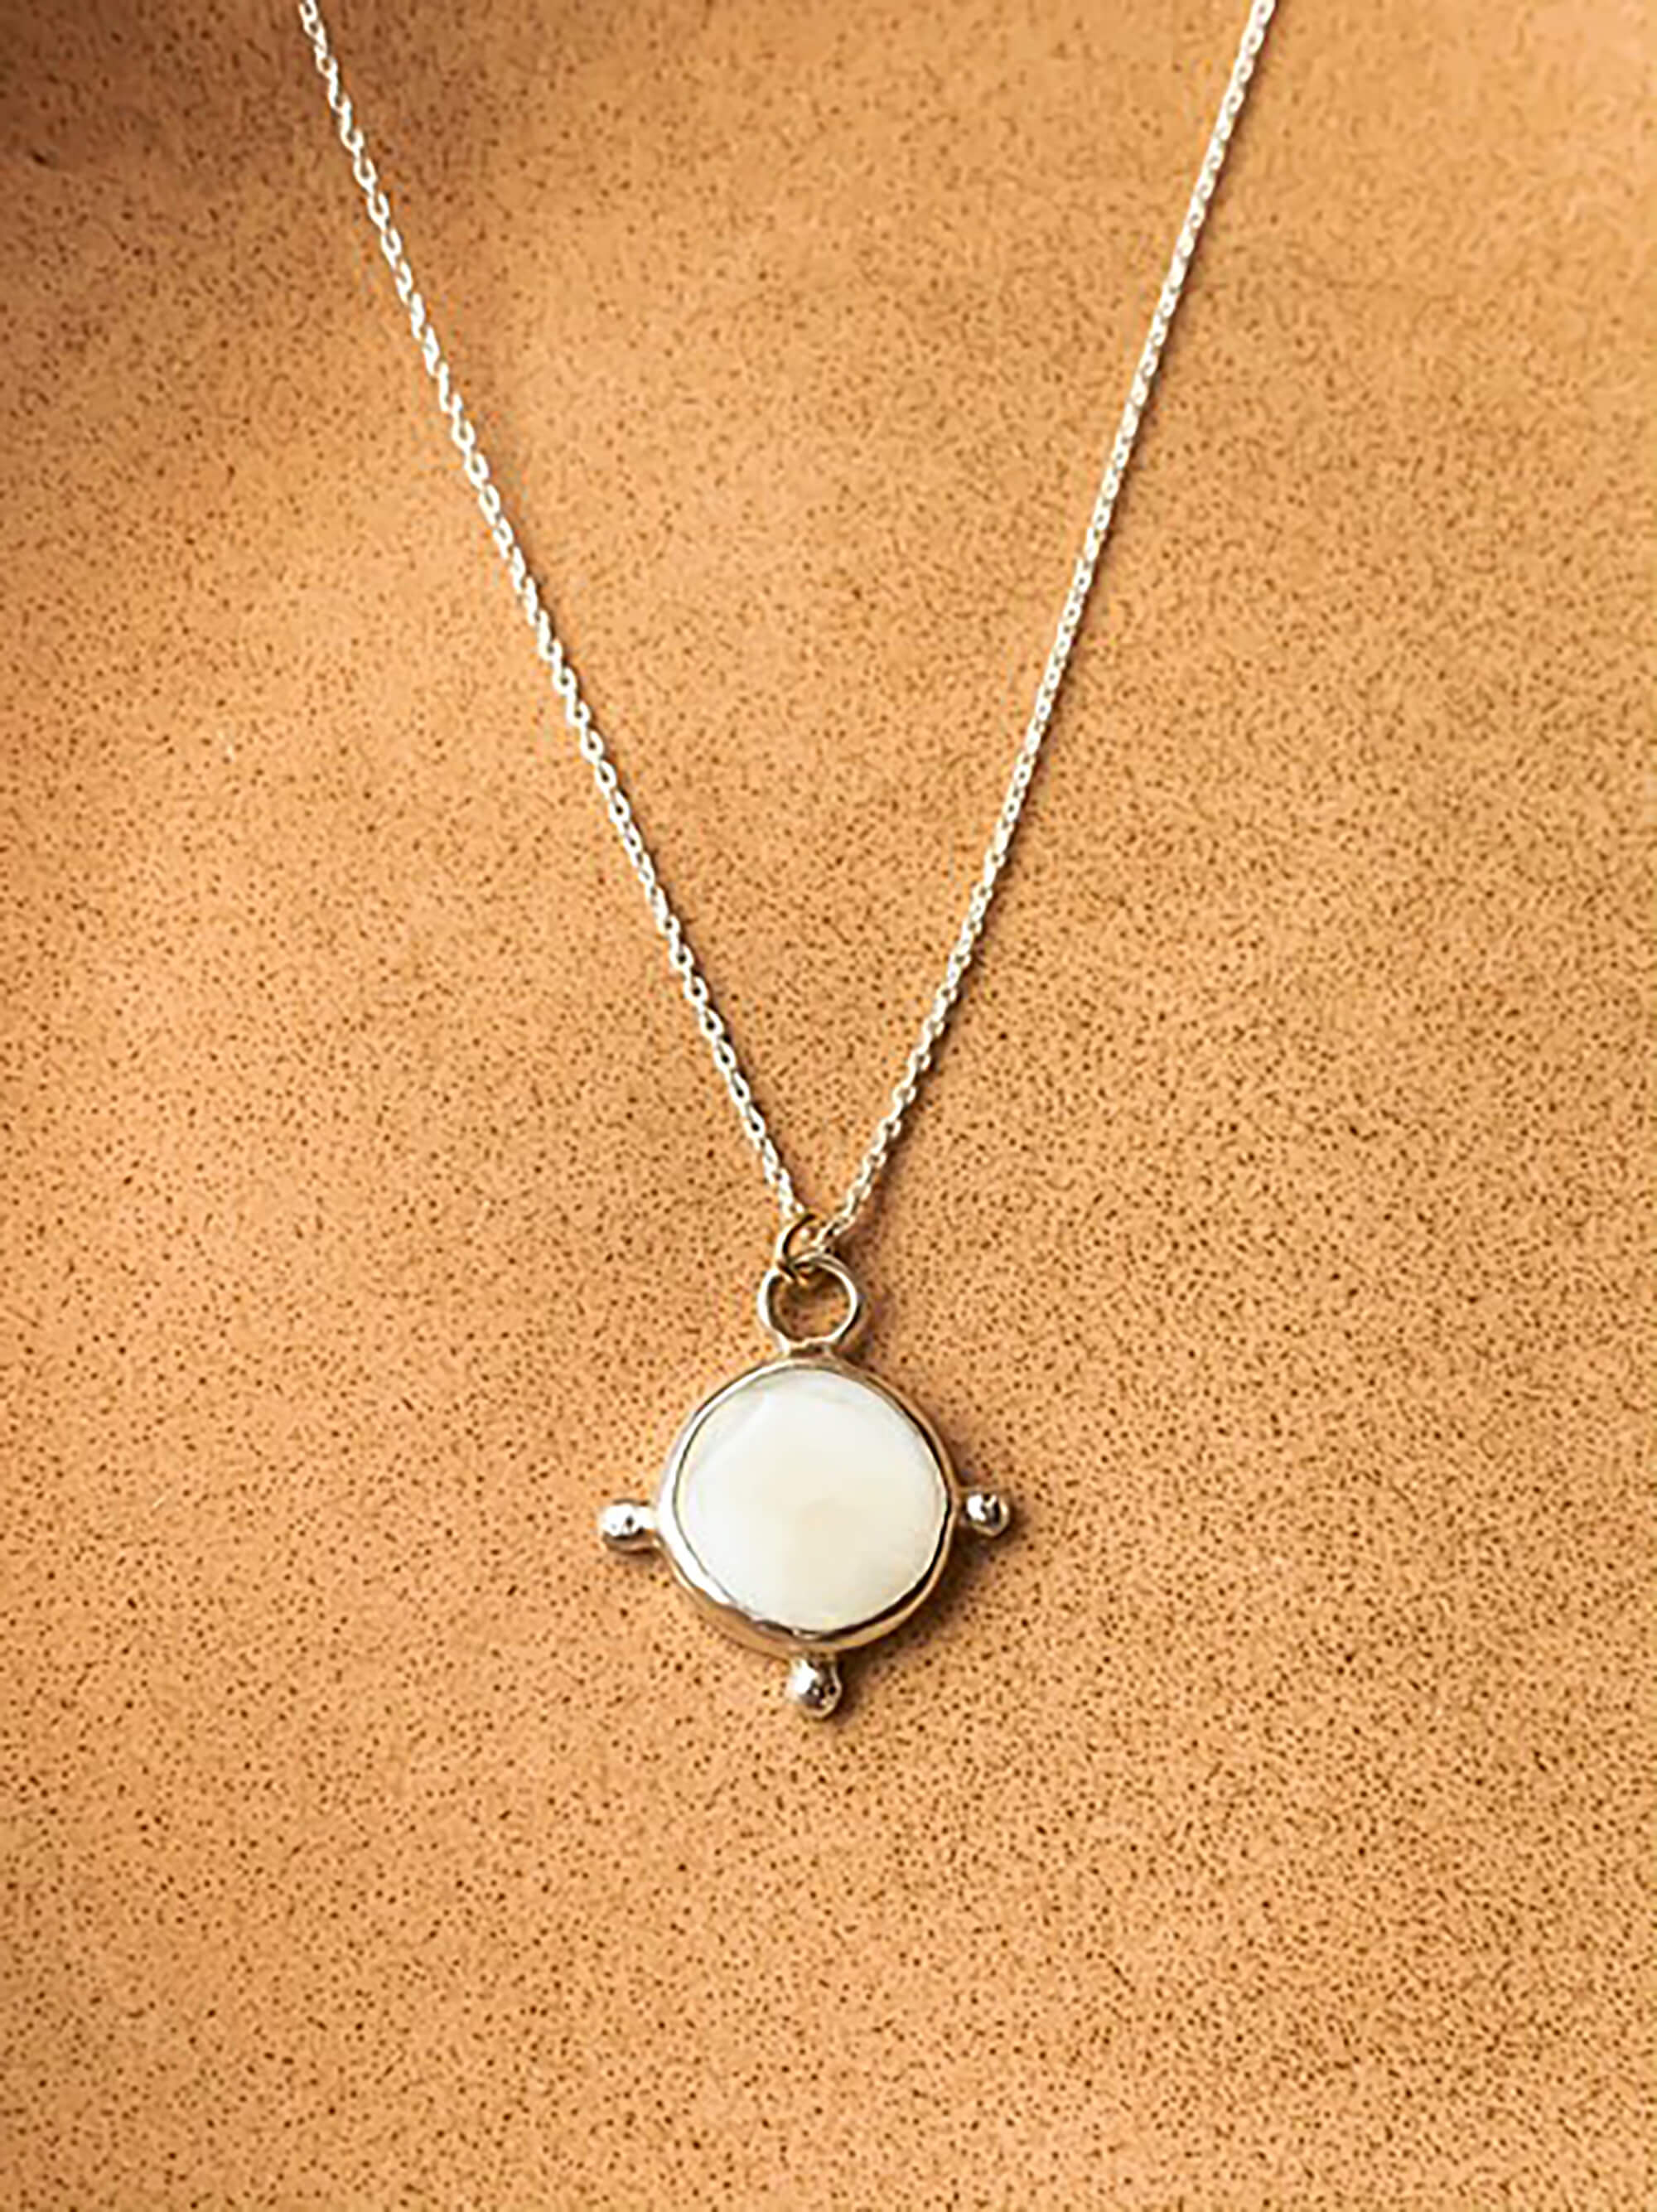 Larissa Necklace - Eco Silver with Mother of Pearl